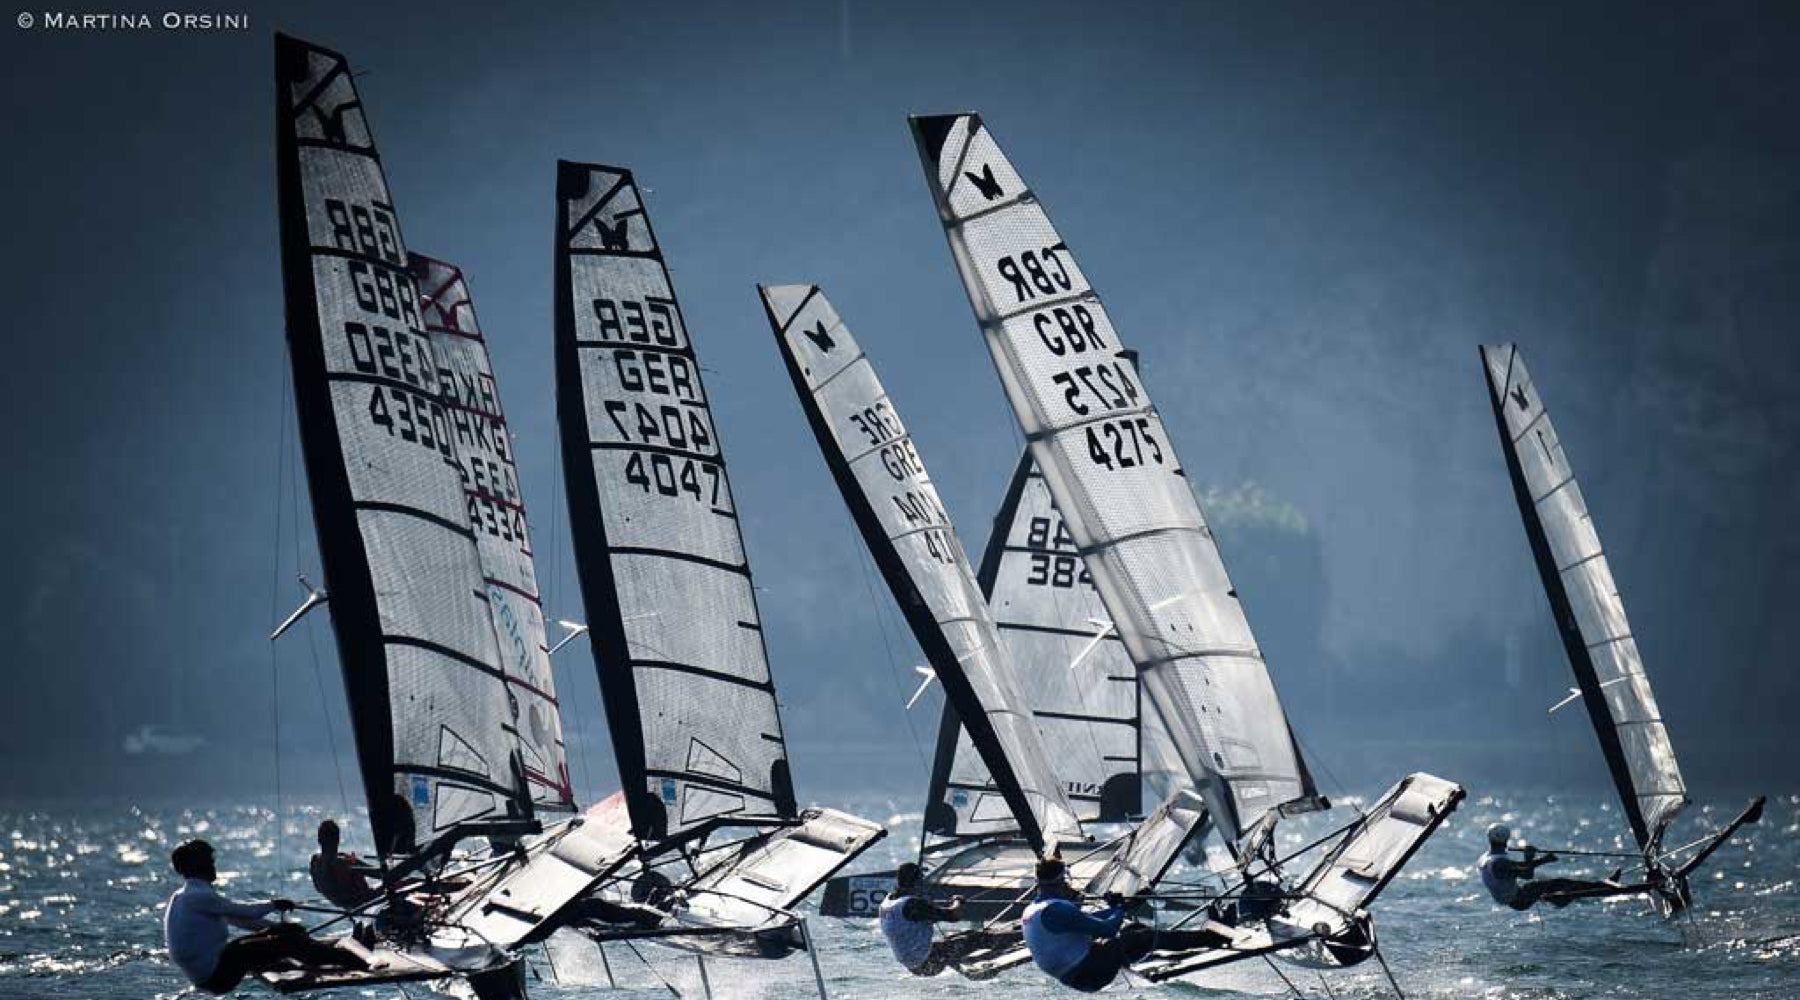 Looking at Foiling Week